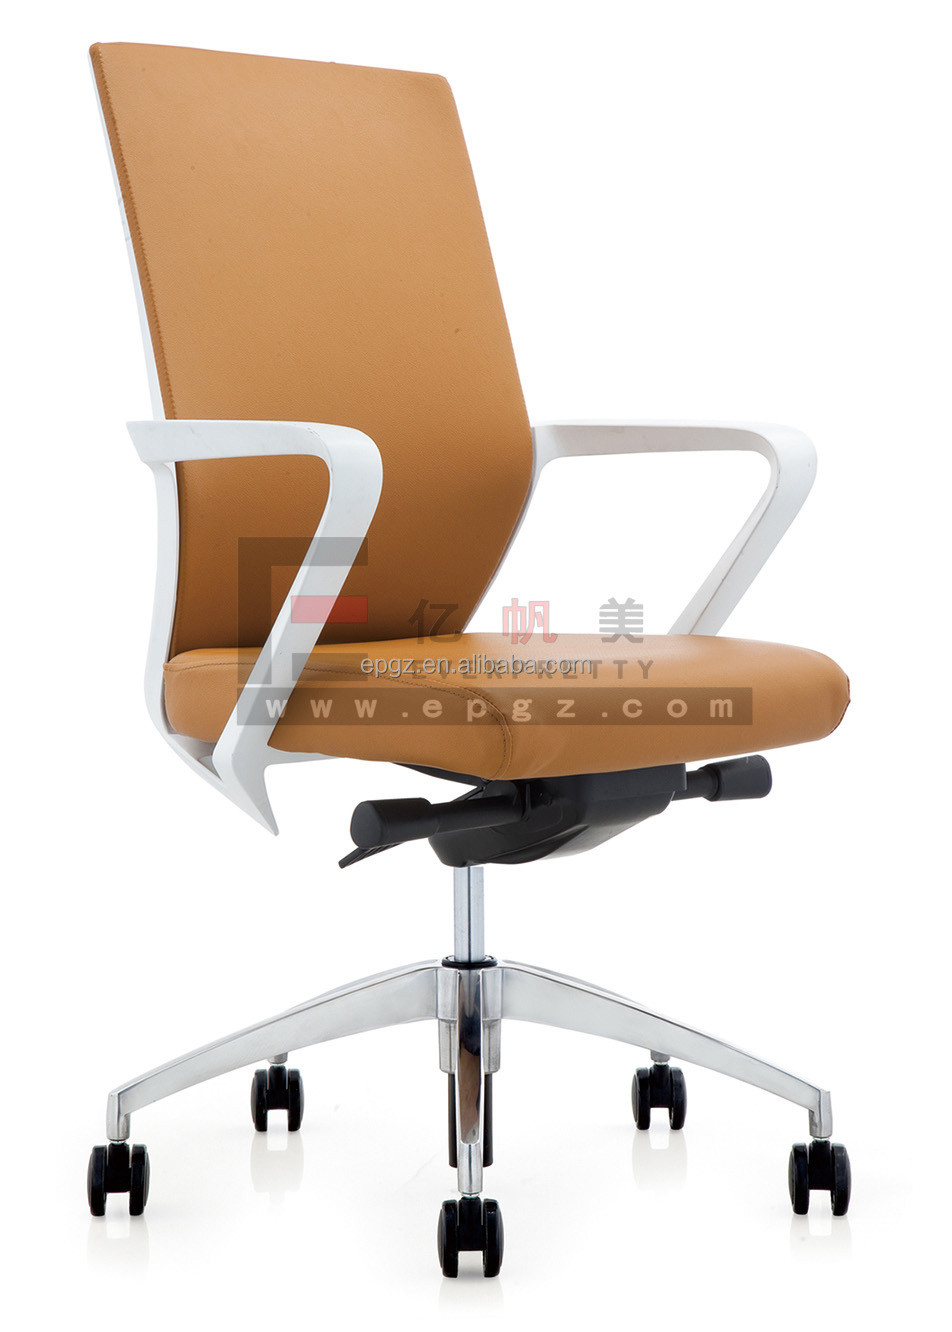 Heavy Duty Industrial Chairs, Office Chair with Plastic Armrest, Office Chairs with Adjustable Lumbar Support